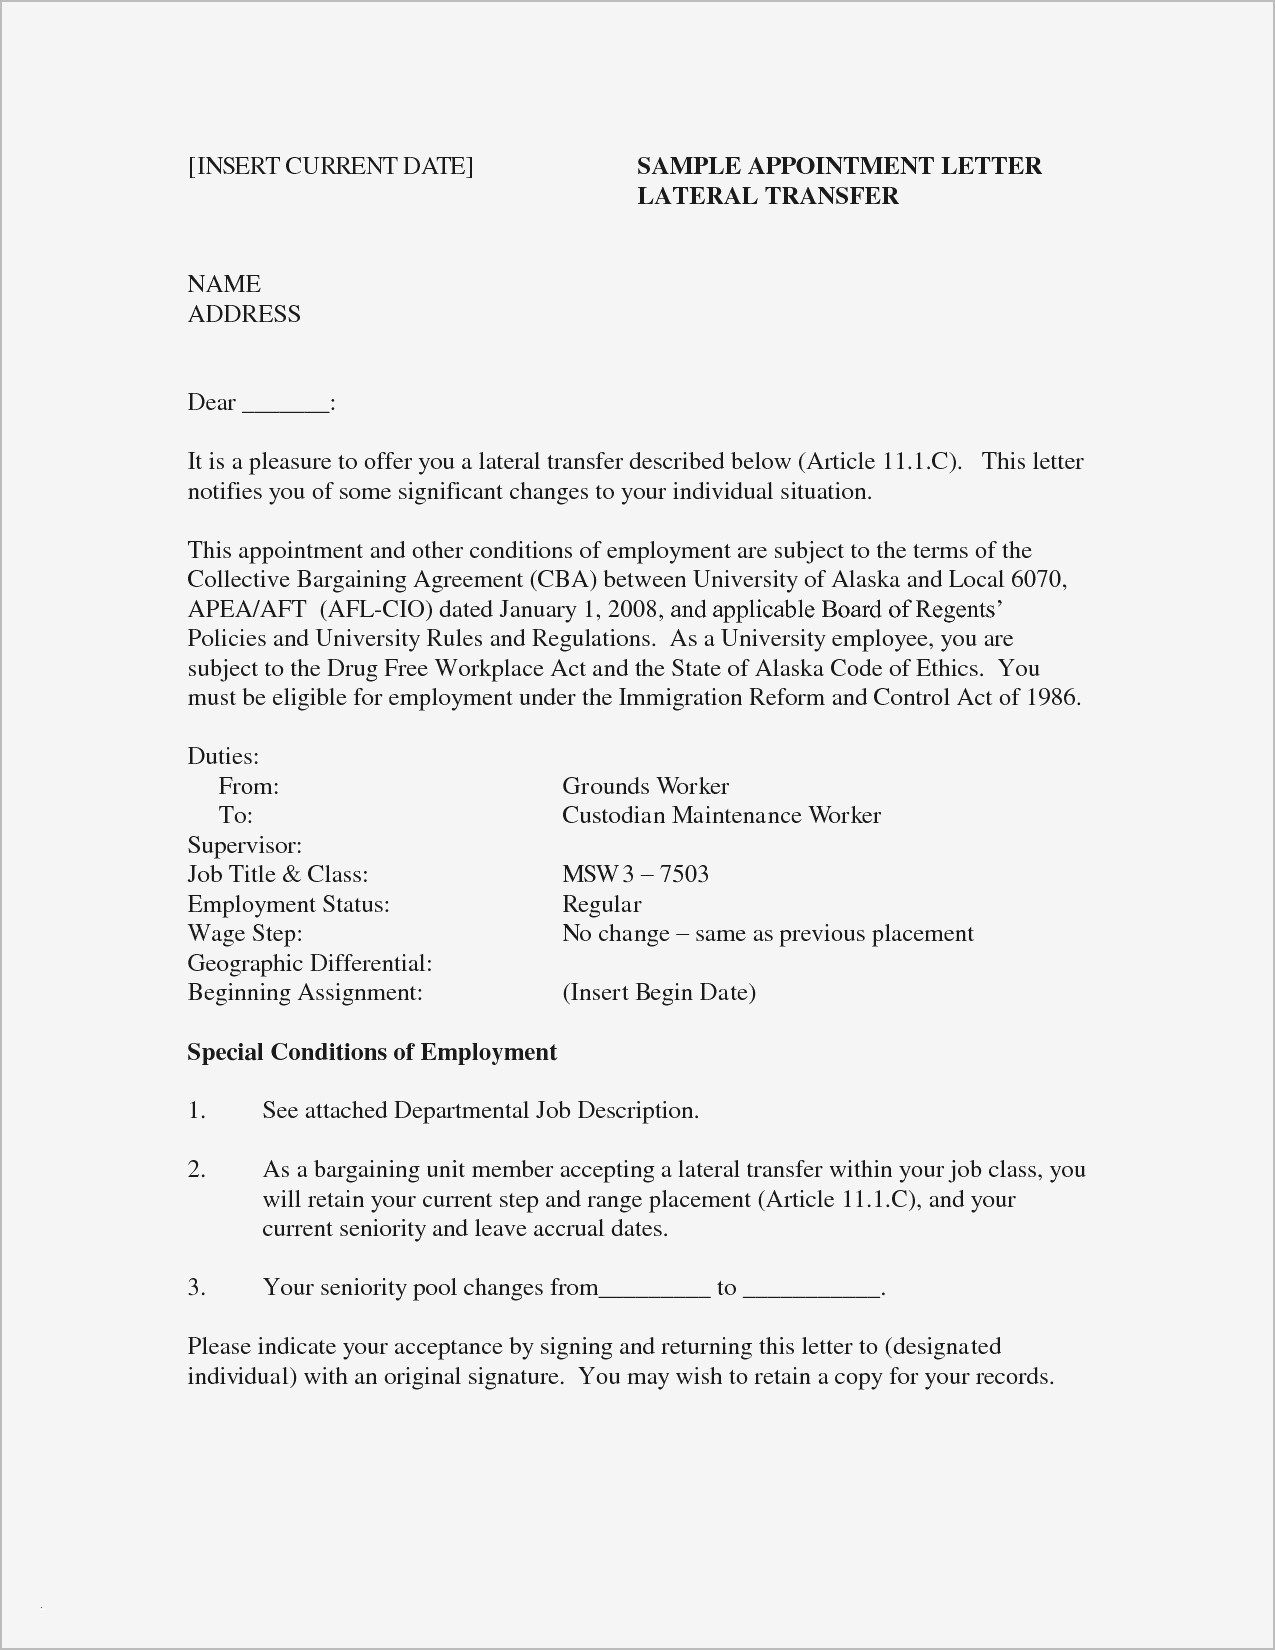 Legal Letter format Template - Educational Resume Template Legalsocialmobilitypartnership